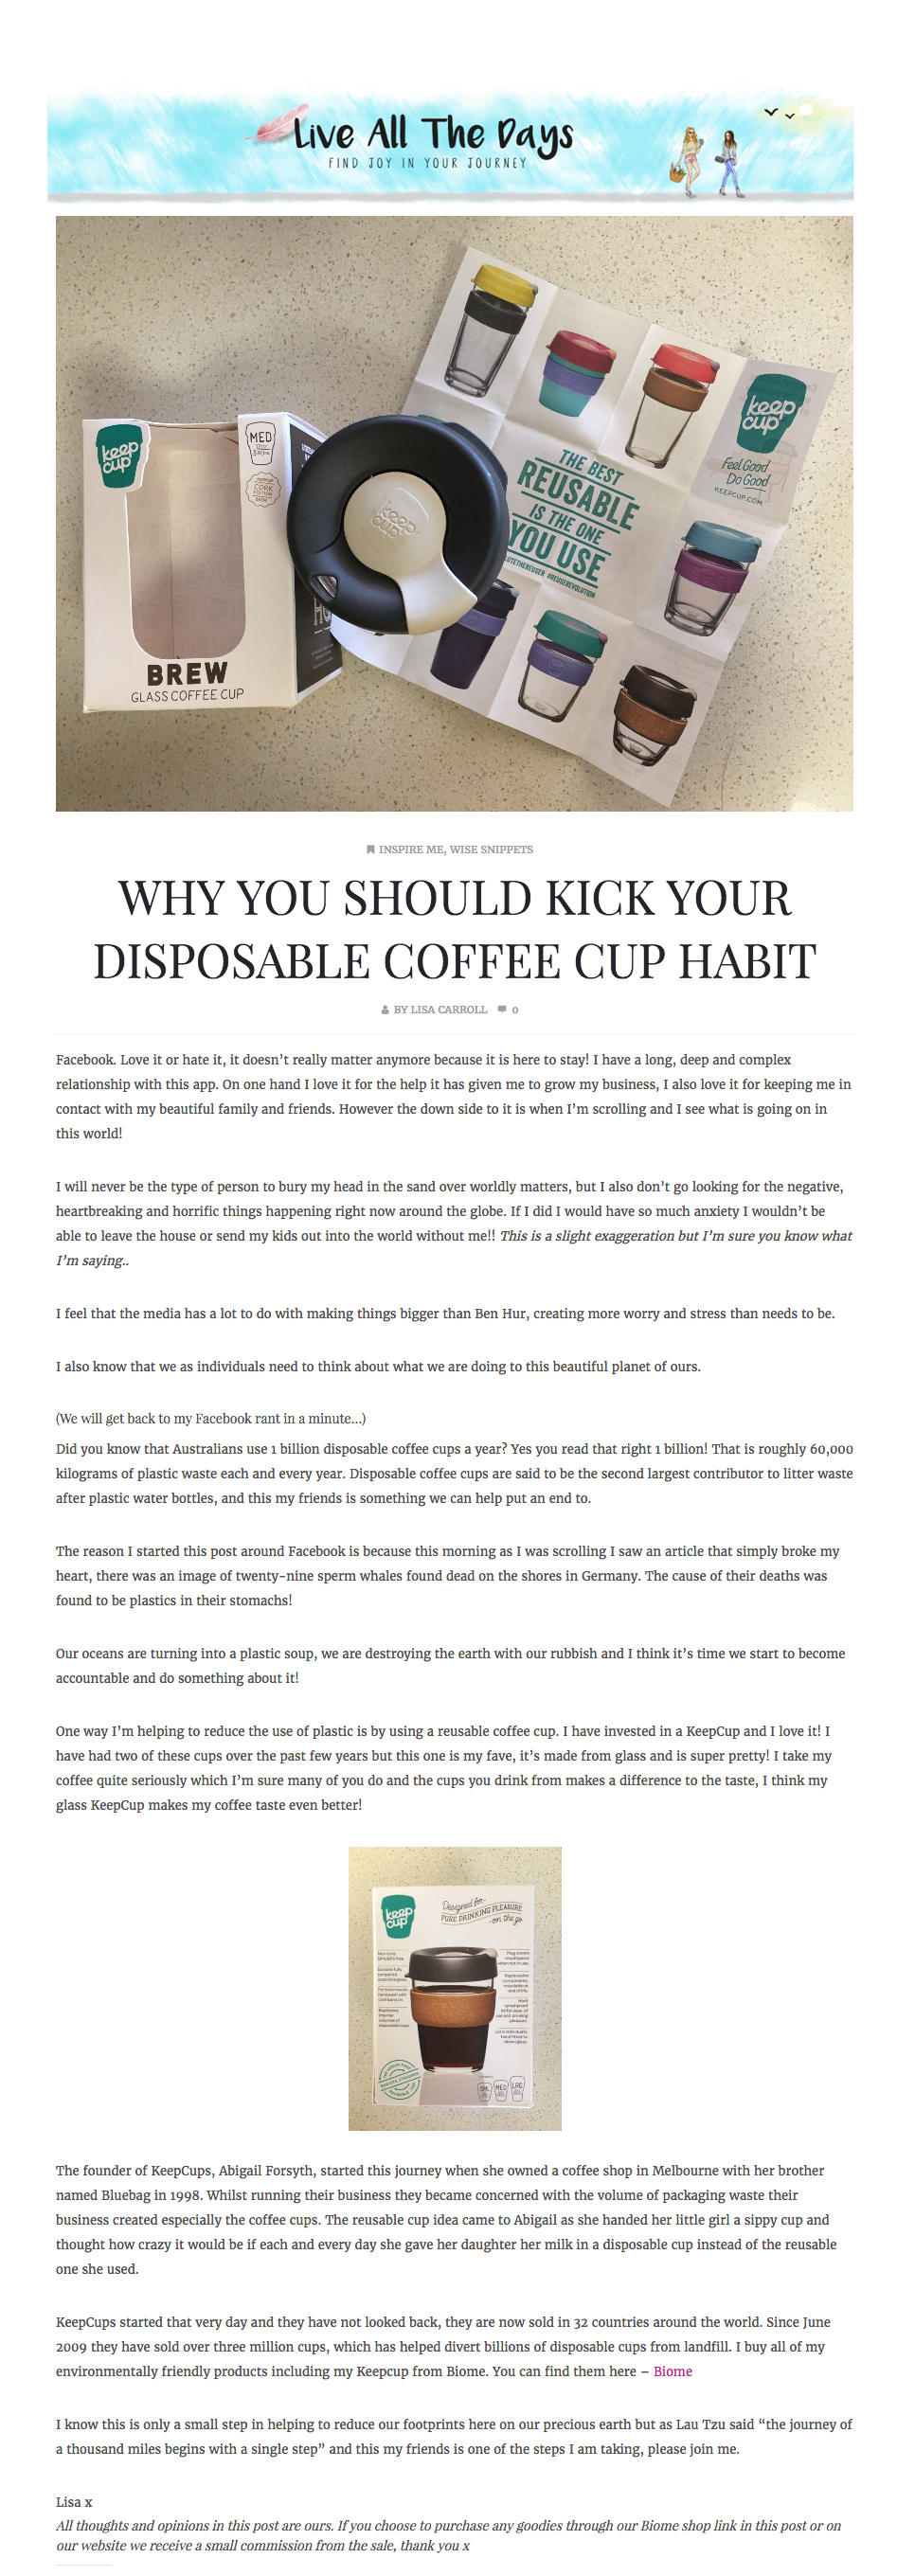 Why you should kick your disposable coffee cup habit